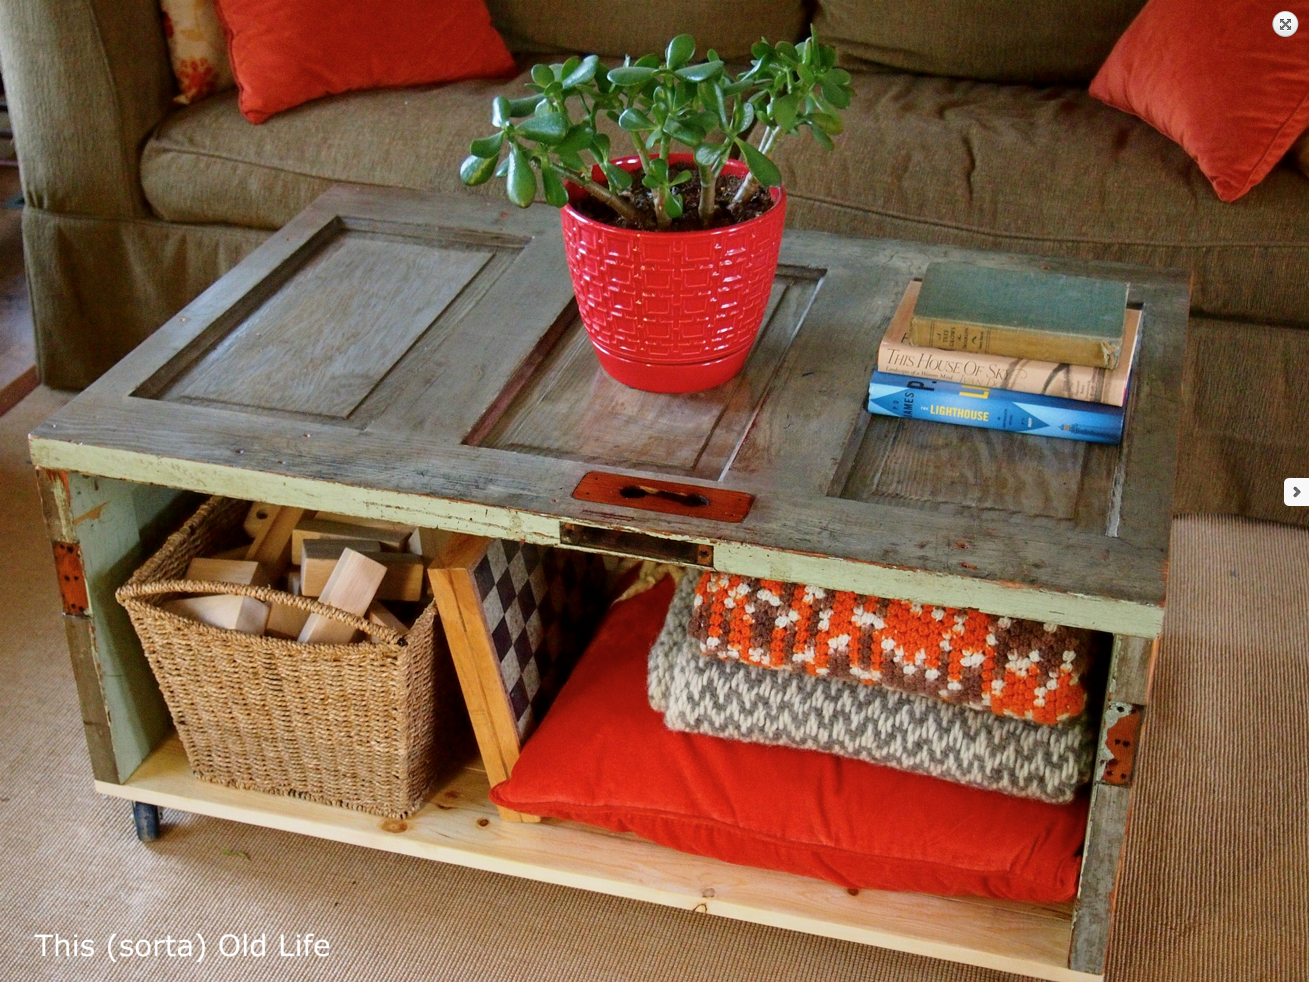 Easy diy coffee table - While They Snooze 5 Great Diy Coffee Tables